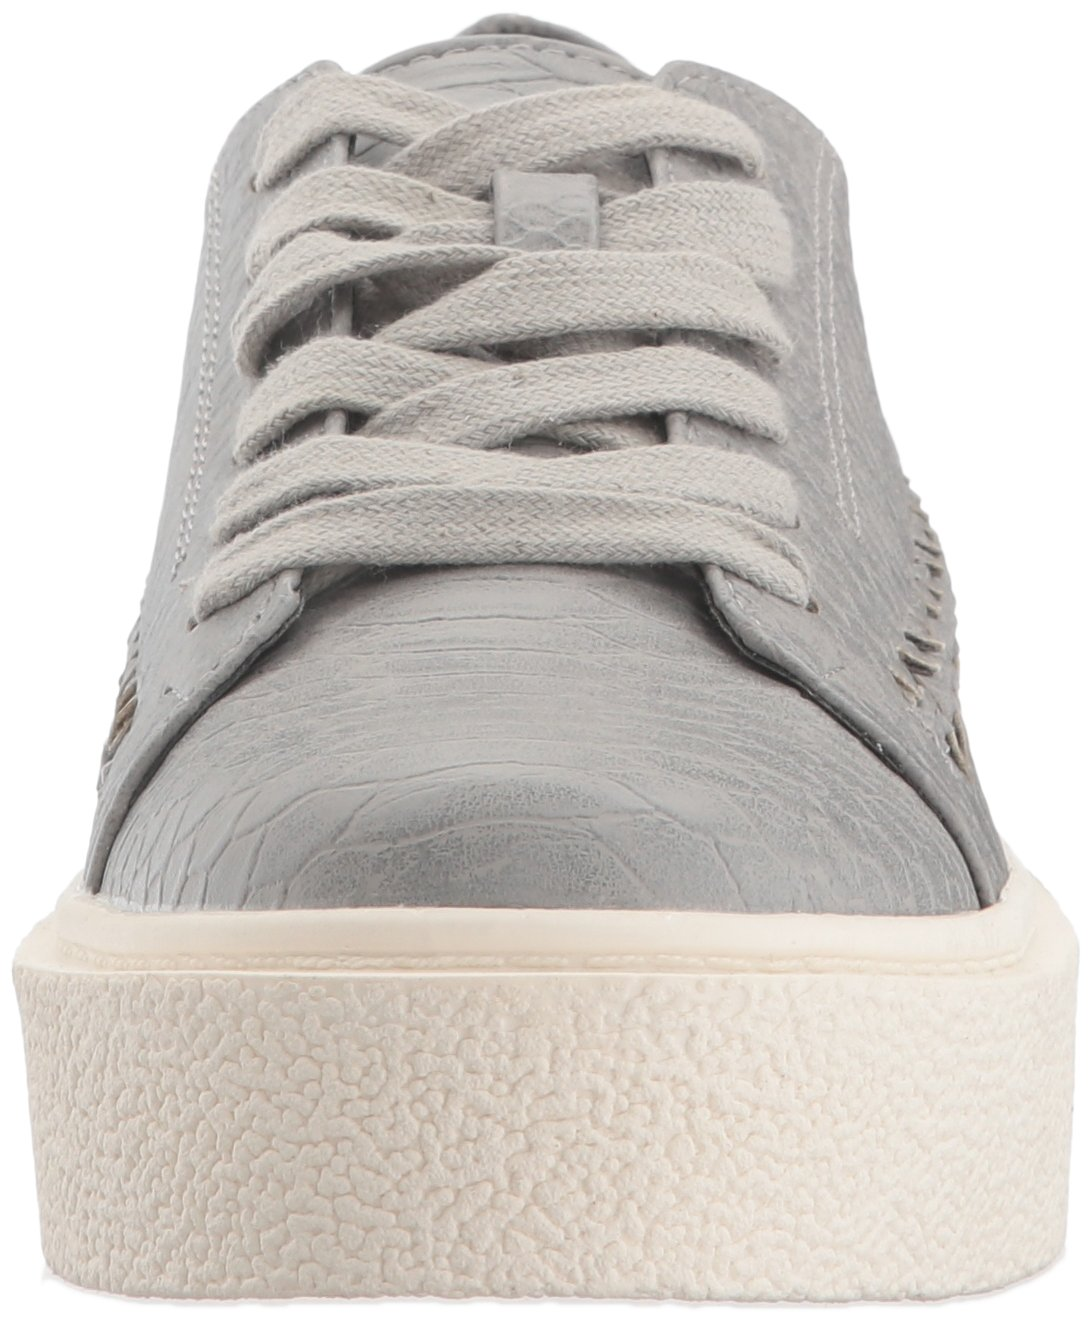 Coconuts by Matisse Women's White Out Sneaker B0773BZKS7 8.5 B(M) US Grey